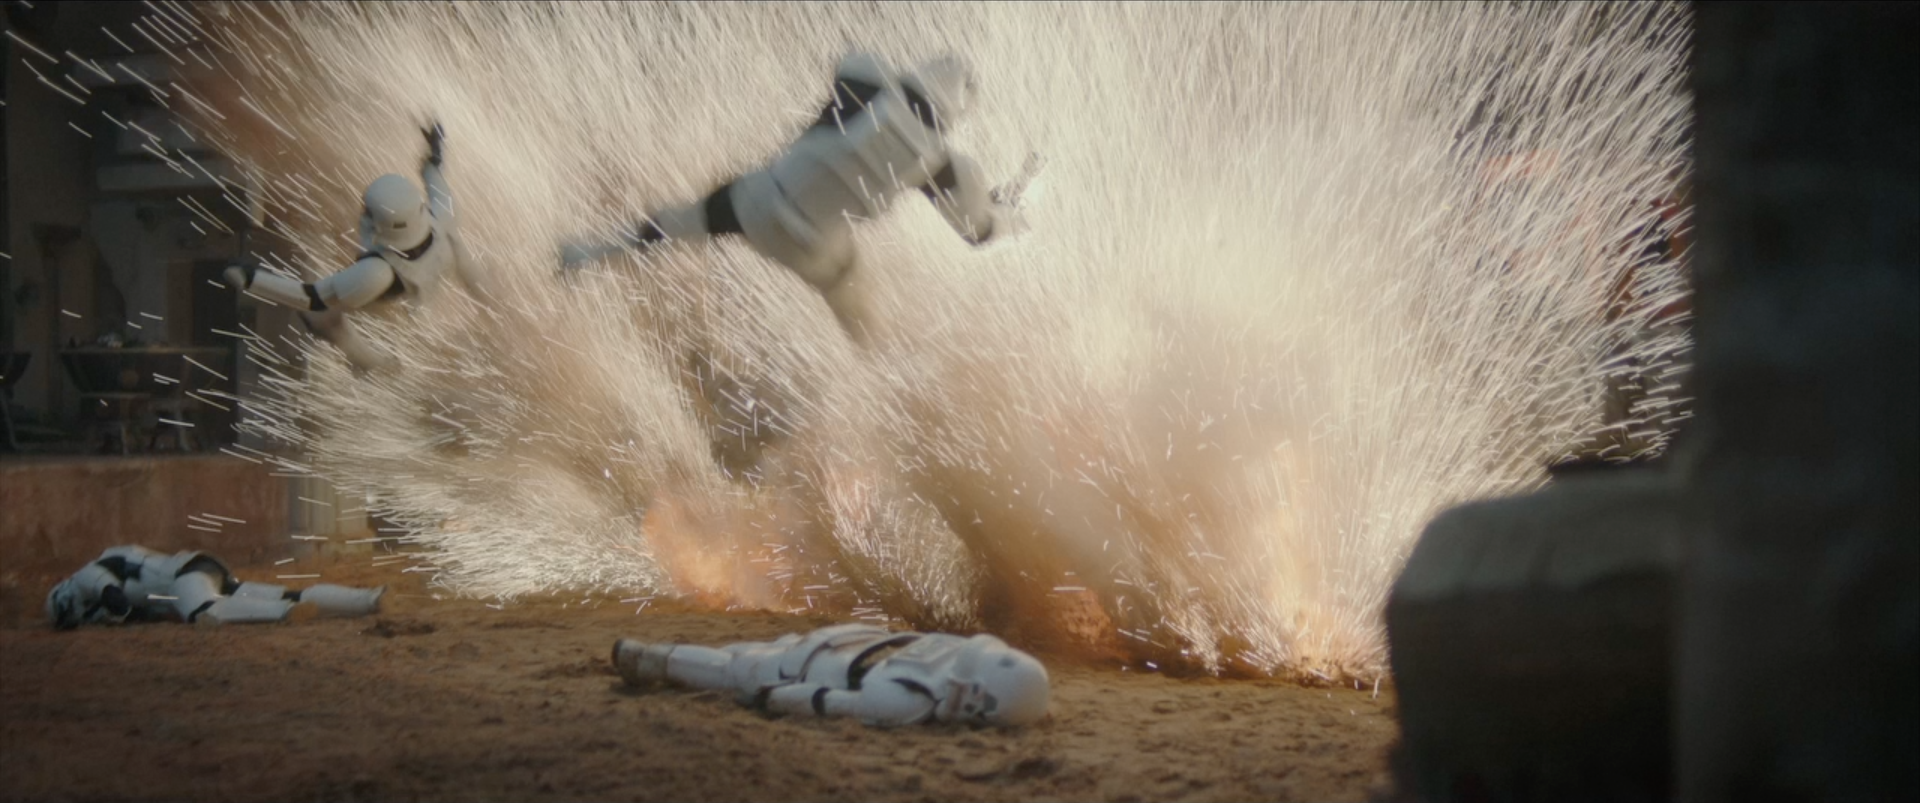 So You Want To Join The Empire: What We Learned About Those Rogue One Troopers in 13 Pictures